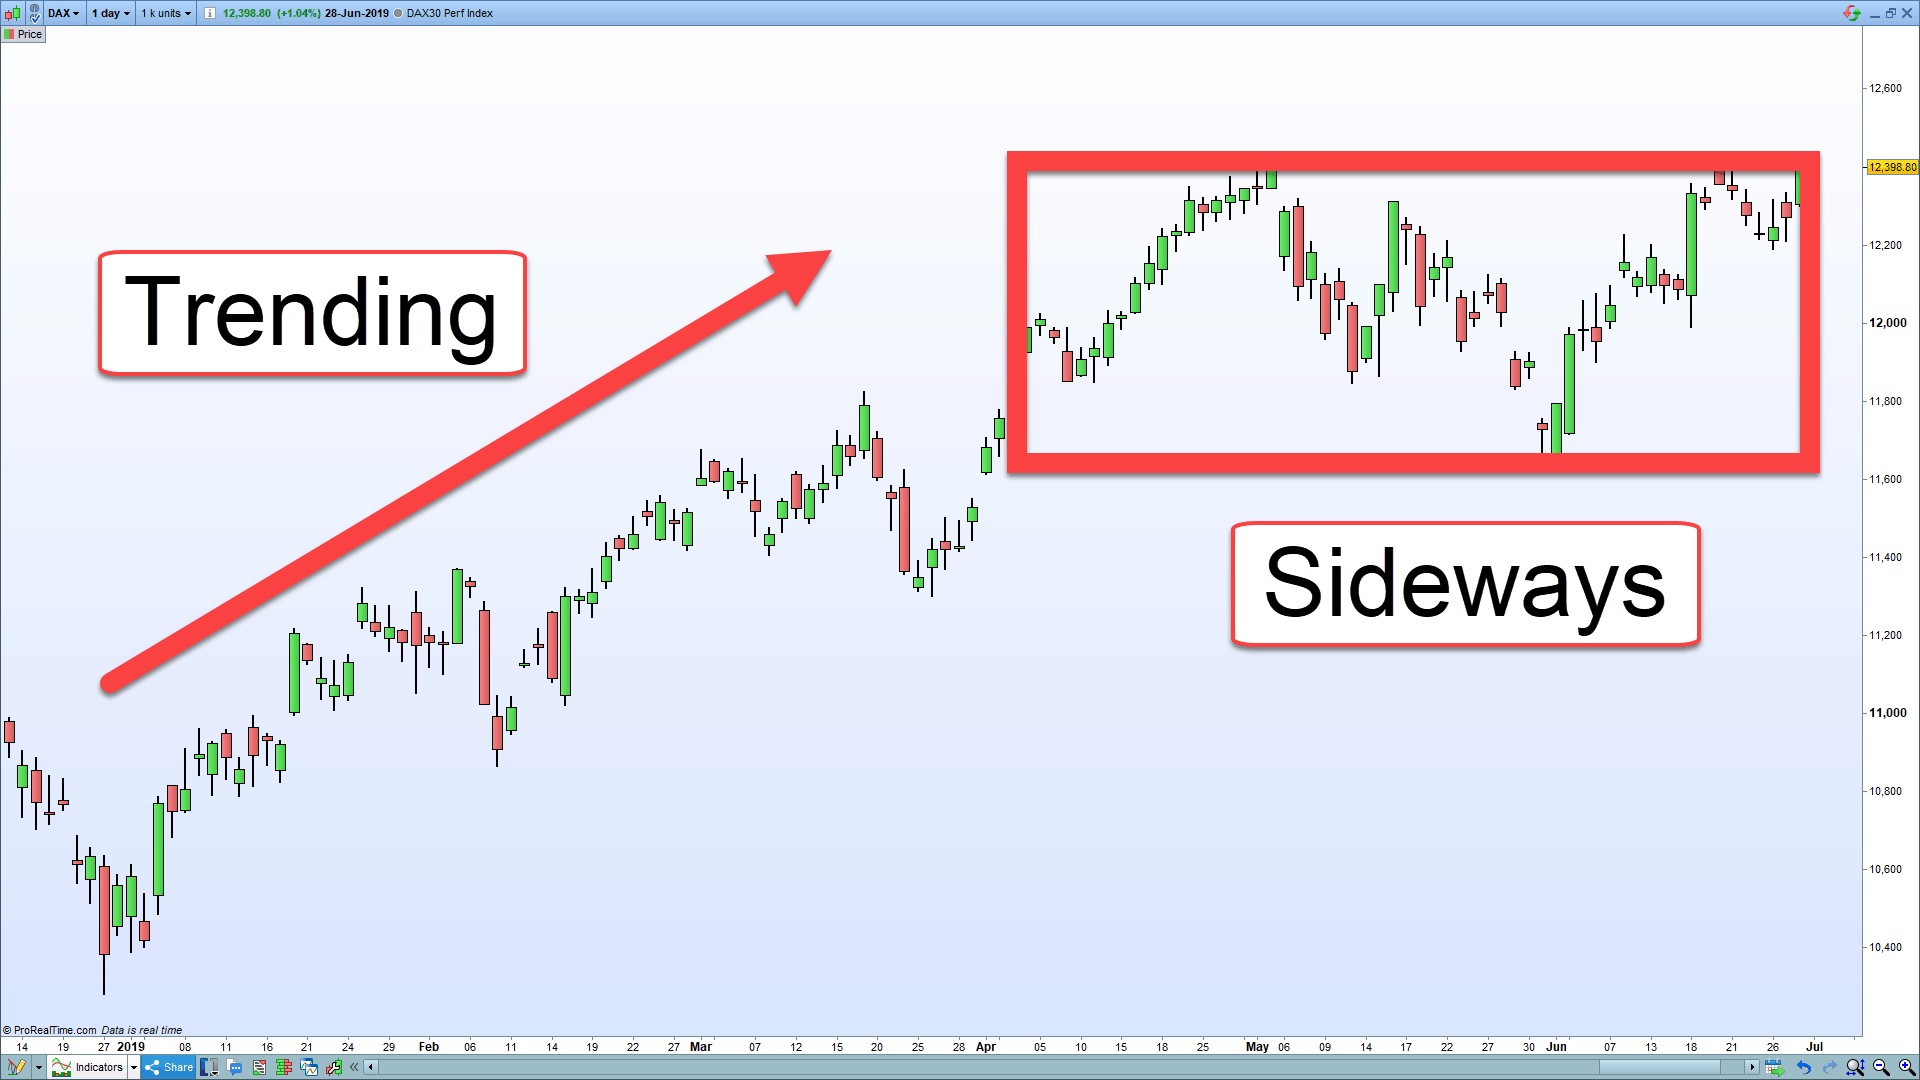 A chart showing trending and sideways market conditions.